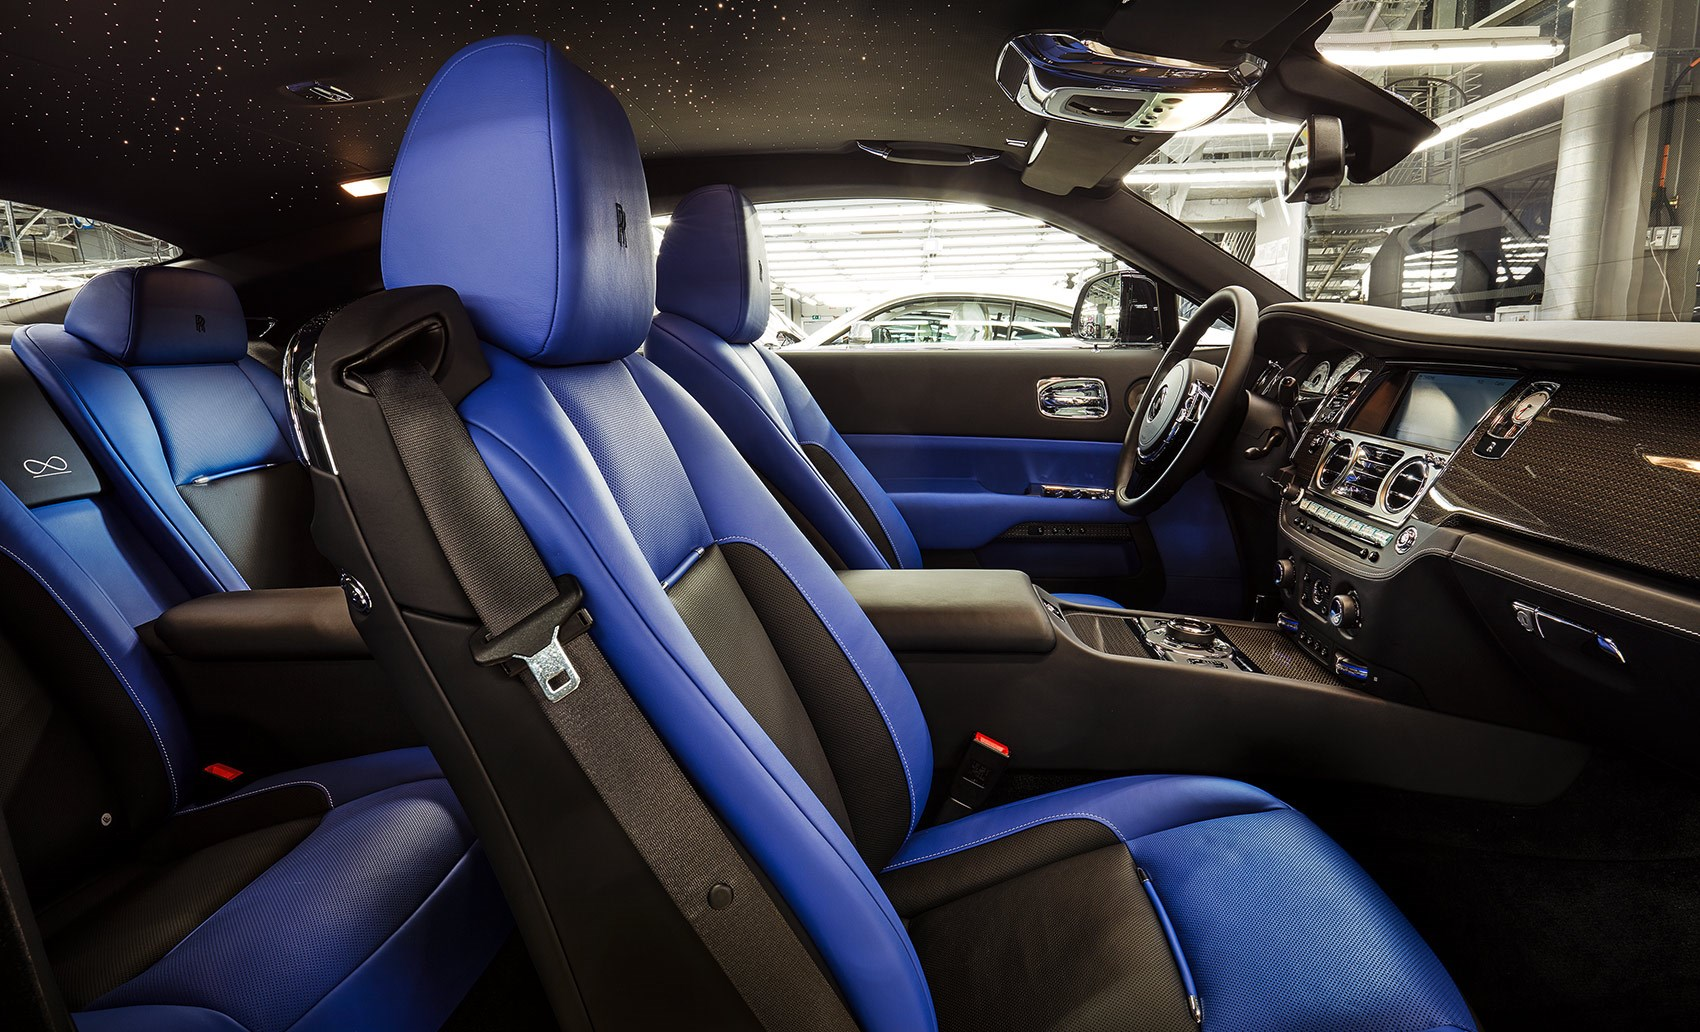 Inside Rolls Royce 800 Hours And The Job S A Good Un By